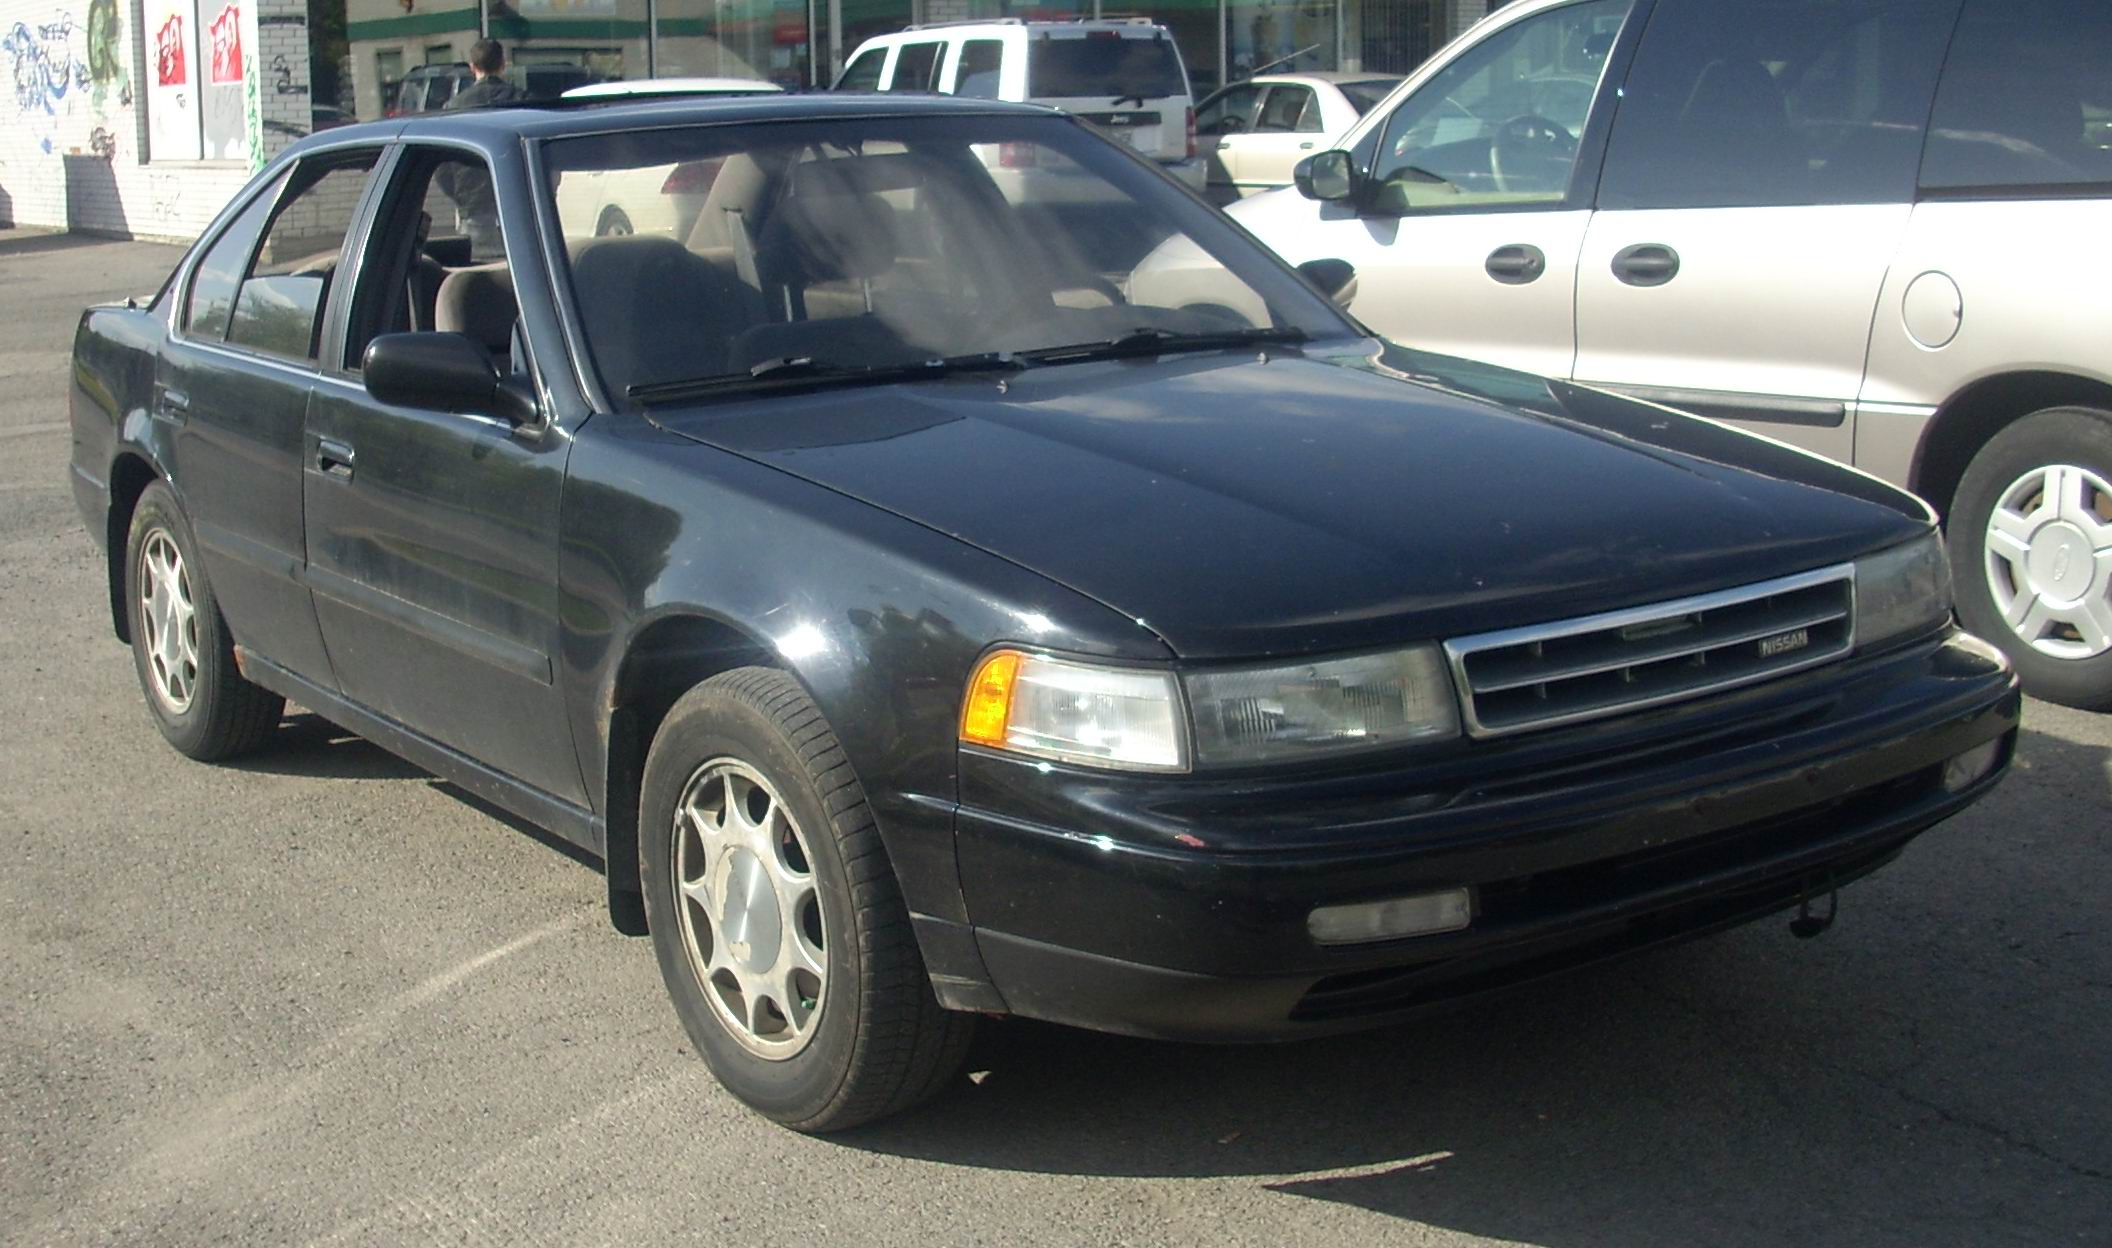 File:'93 Nissan Maxima With '89-'91 Grille.JPG - Wikimedia Commons